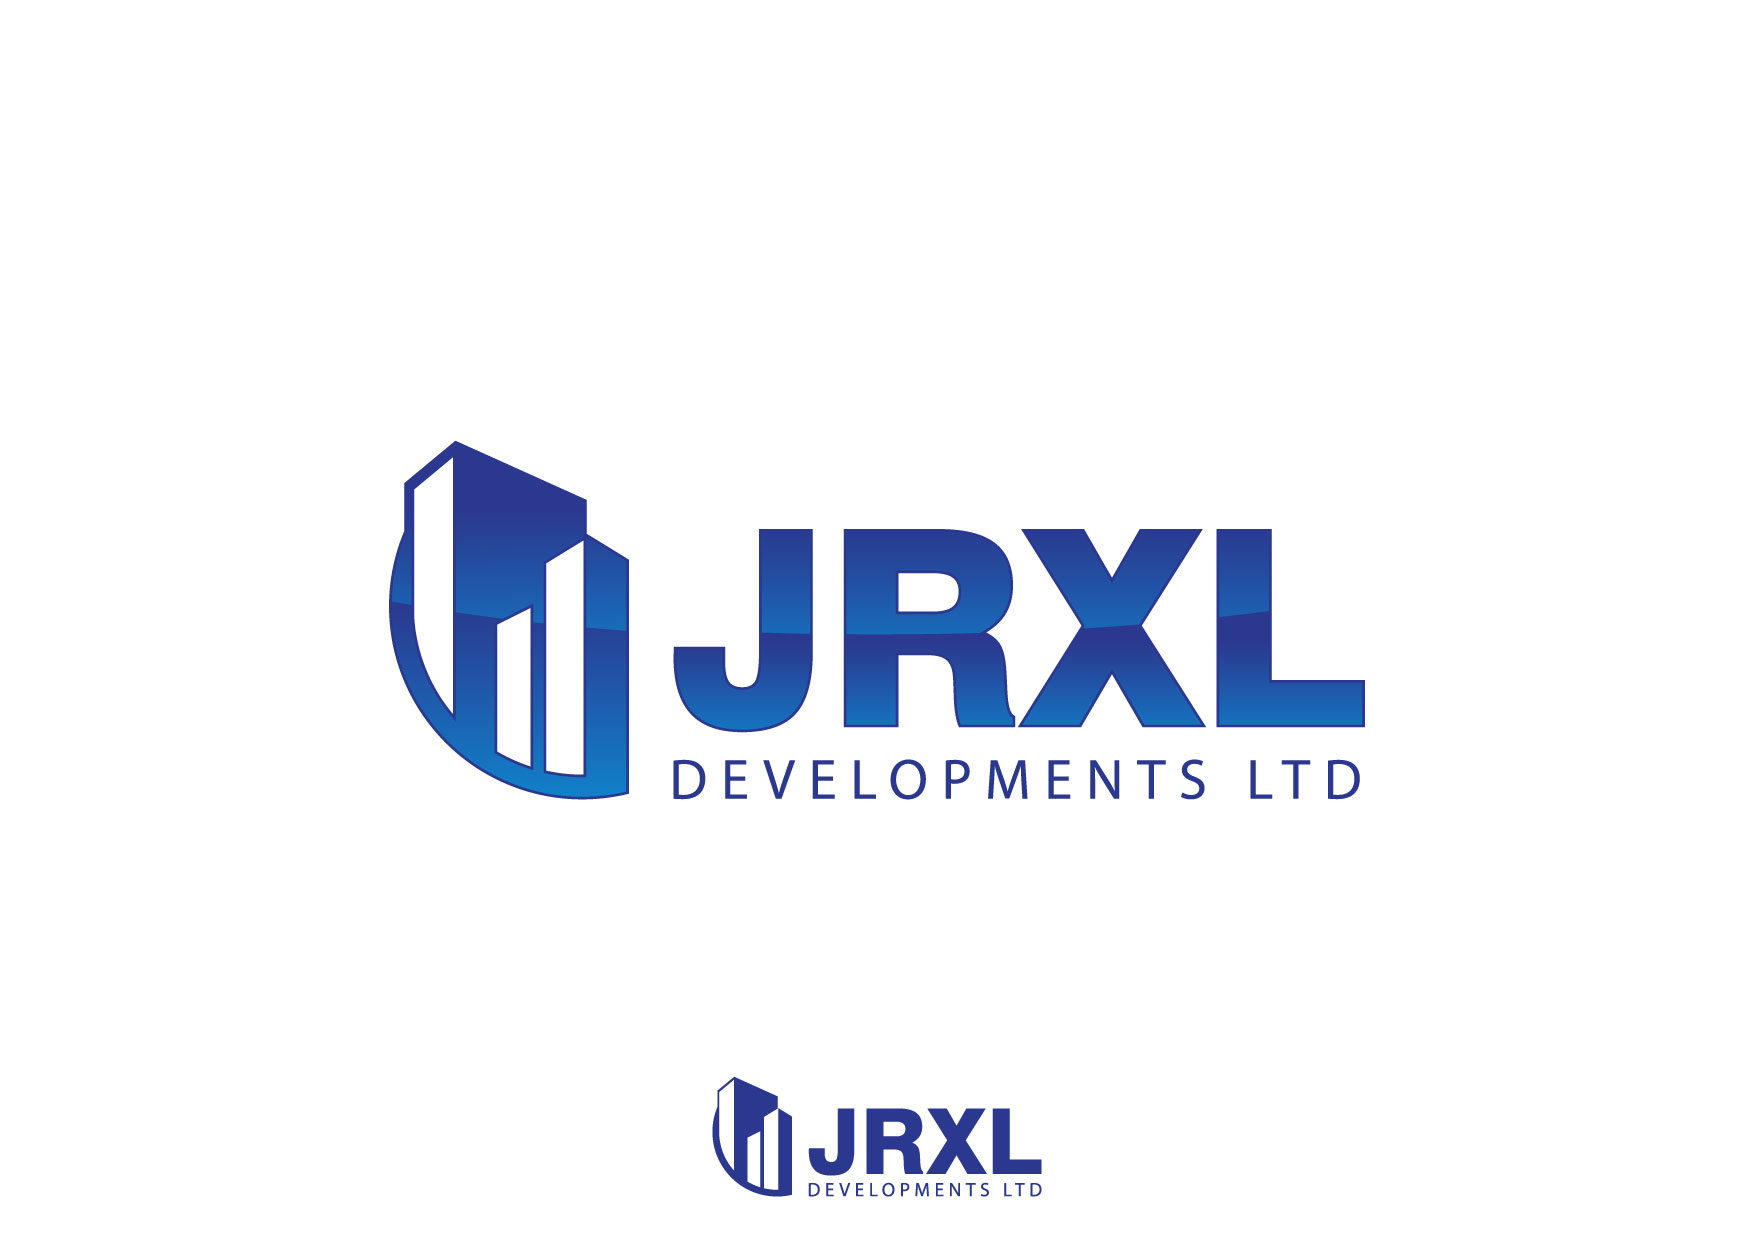 Logo Design by Nurgalih Destianto - Entry No. 55 in the Logo Design Contest JRXL DEVELOPMENTS LTD Logo Design.